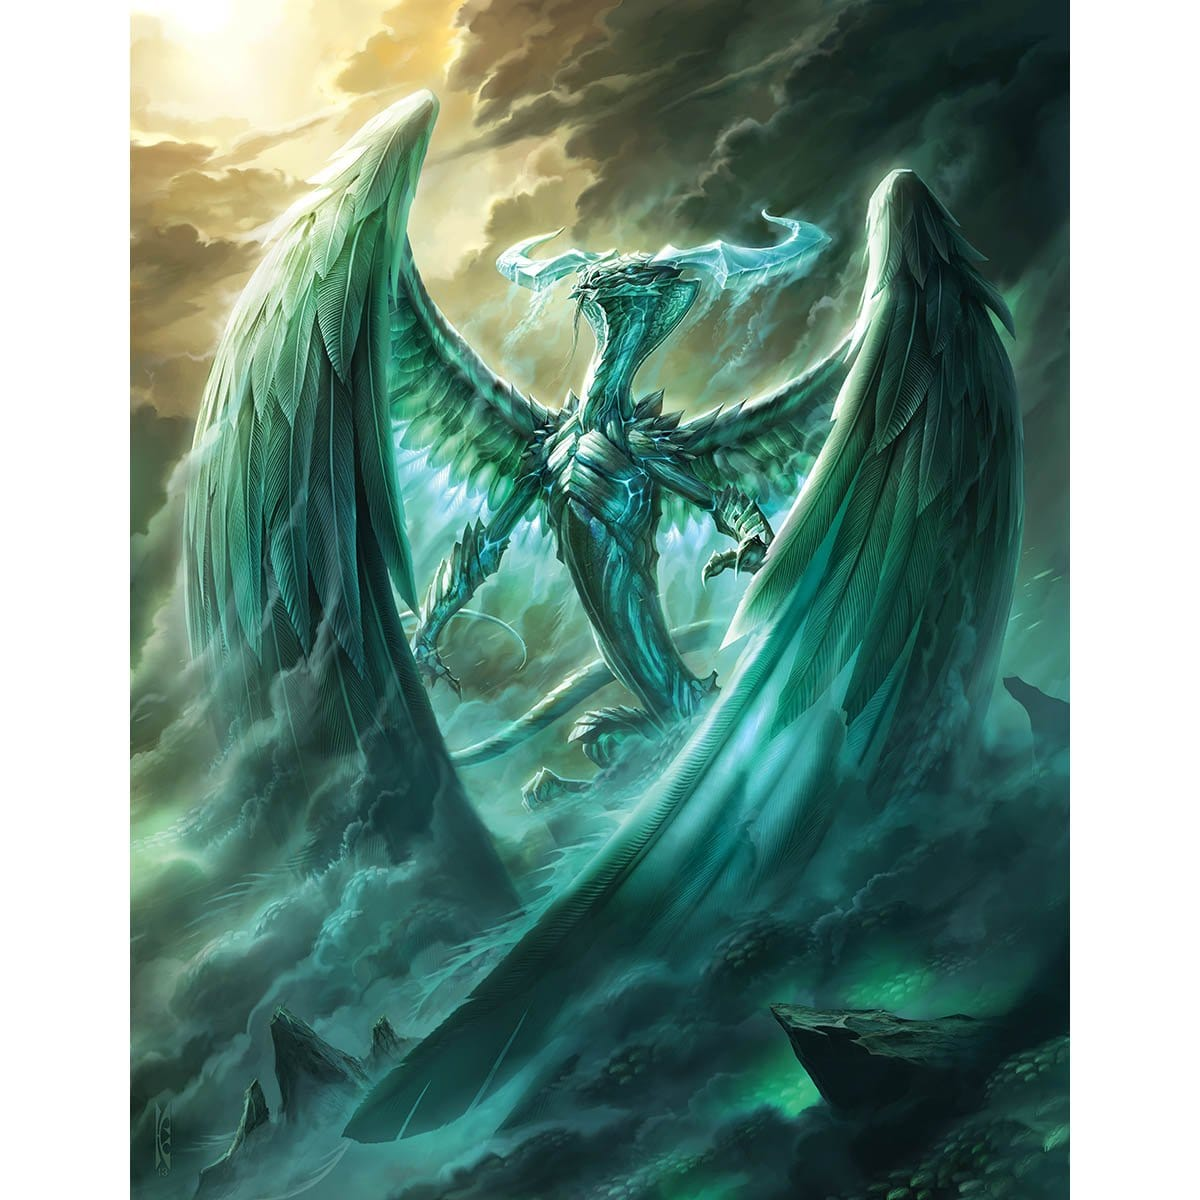 Ugin, the Spirit Dragon Print - Print - Original Magic Art - Accessories for Magic the Gathering and other card games